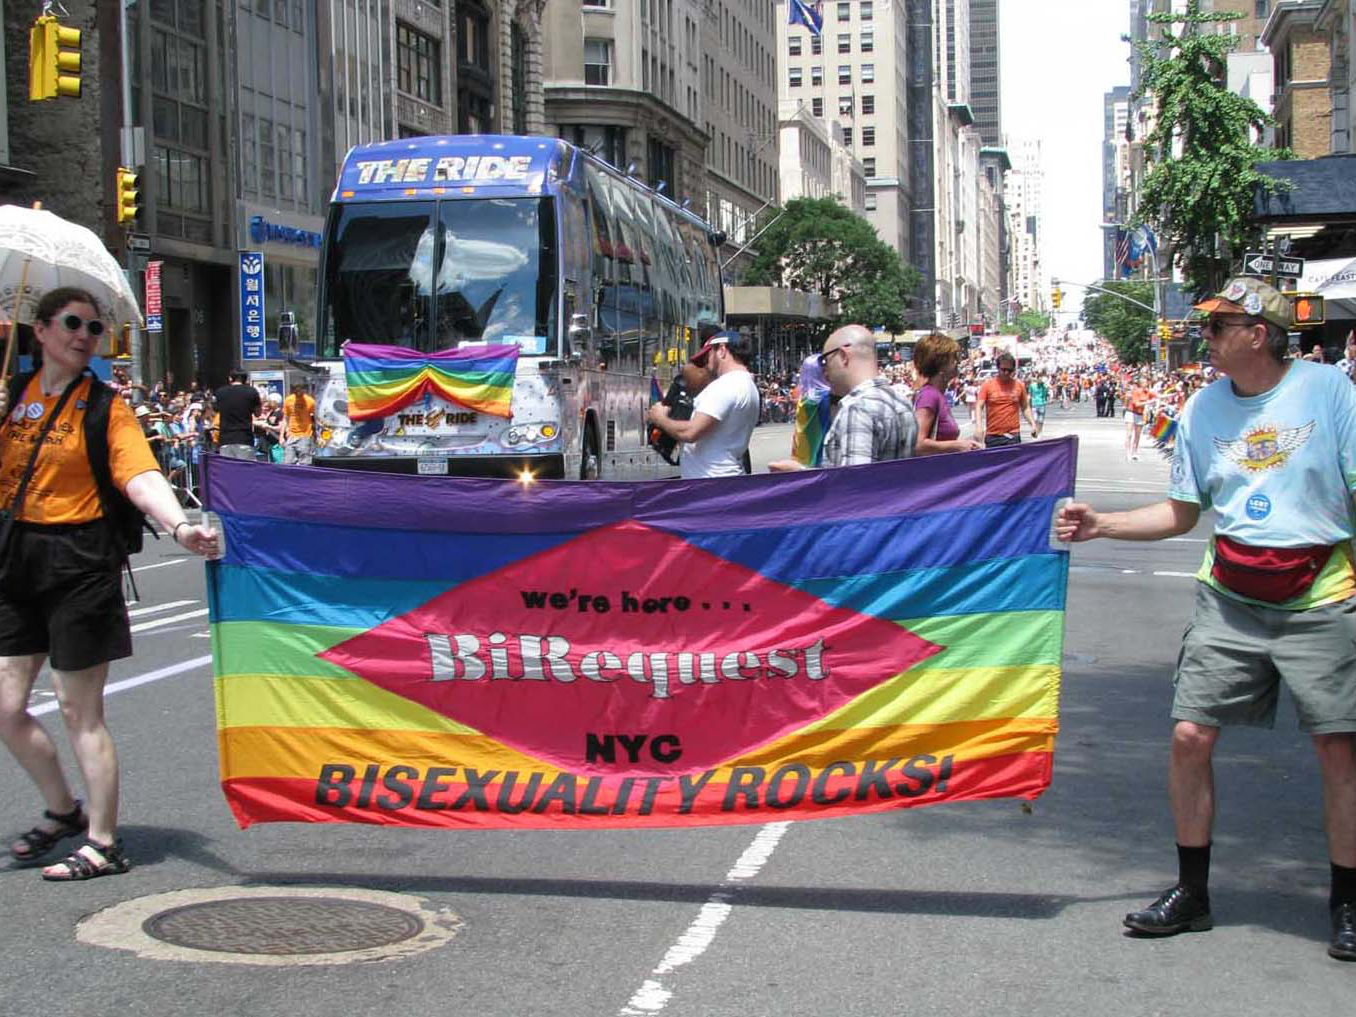 BiRequest/NYC Bisexuality Rocks contingent in the June 2012 Pride march in New York City